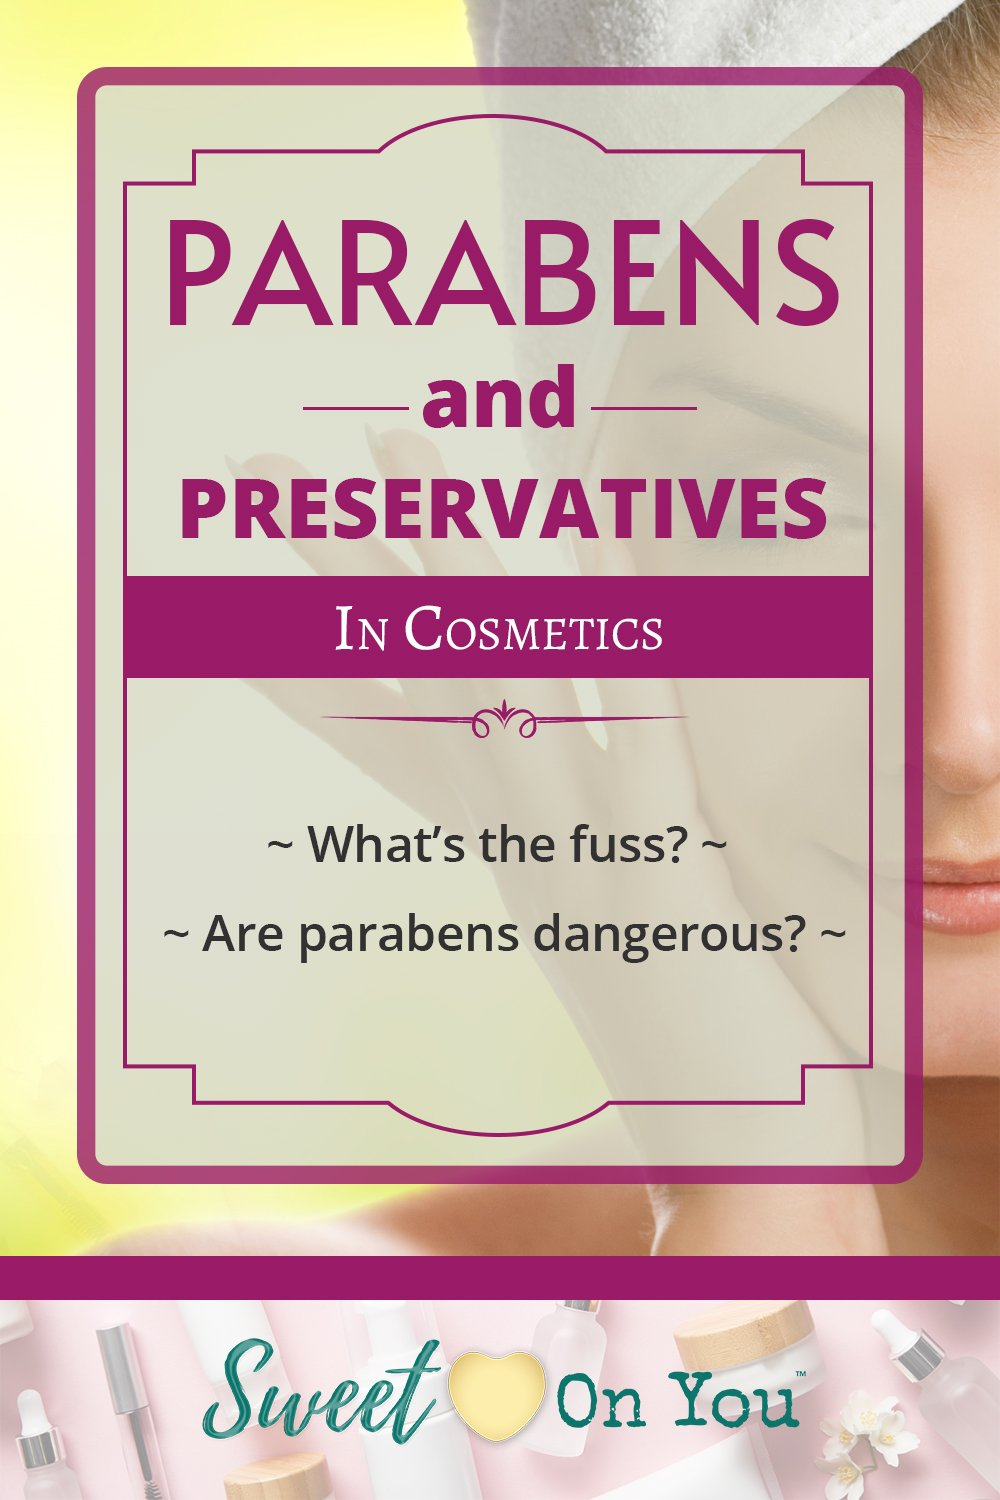 Parabens and Preservatives